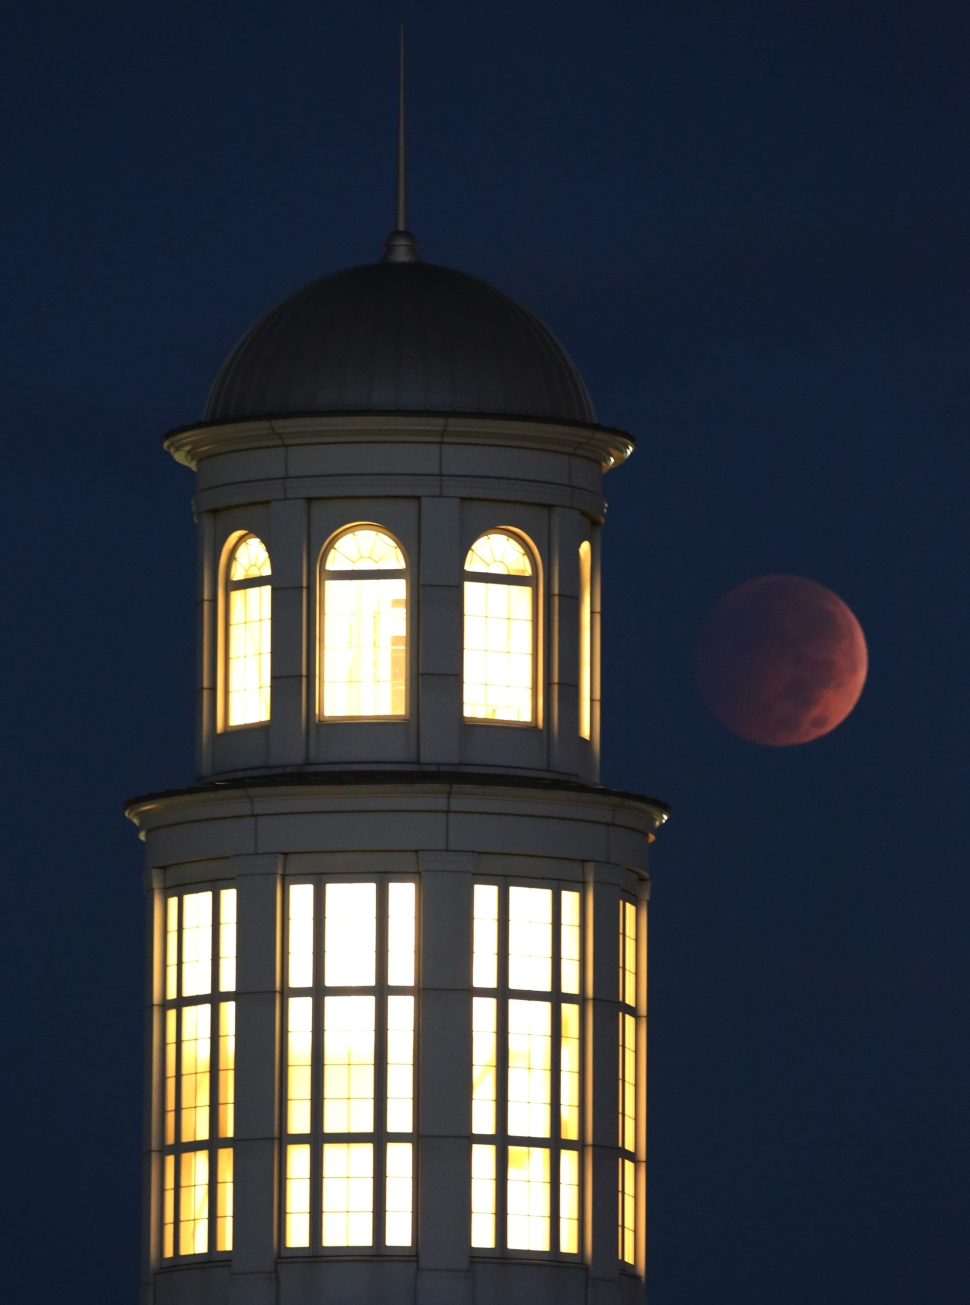 A full lunar eclipse glows in the early morning sky  Wednesday over the Trible Library at Christopher Newport University in Newport News, Va.  The eclipse was visible throughout North America, and here in the East between 5:15 a.m., reaching it's reach its peak at 6:25 a.m. (Photo by Adrin Snider)